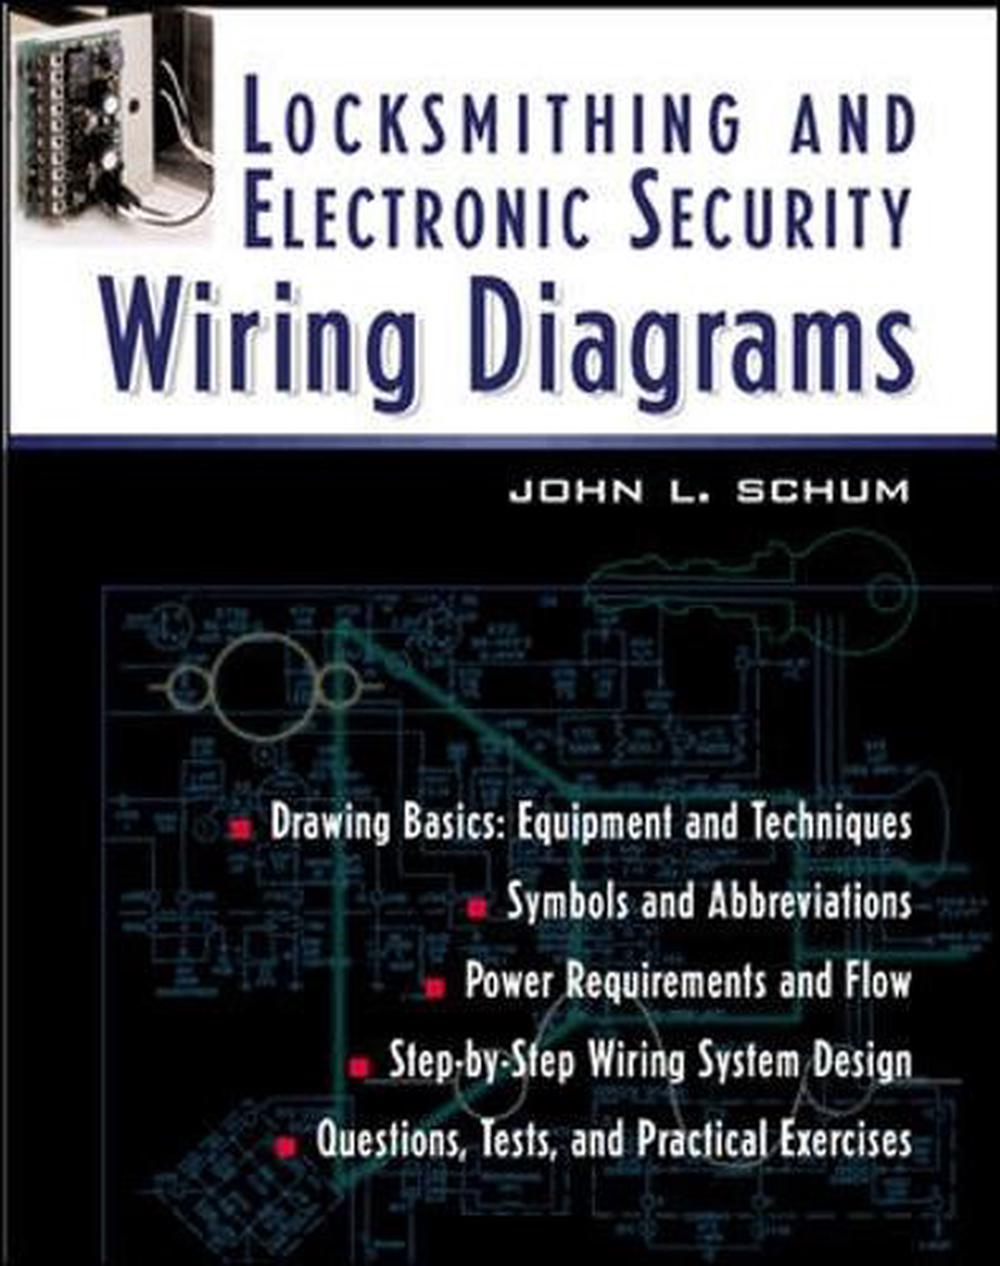 hight resolution of details about locksmithing and electronic security wiring diagrams by j l schum english pap